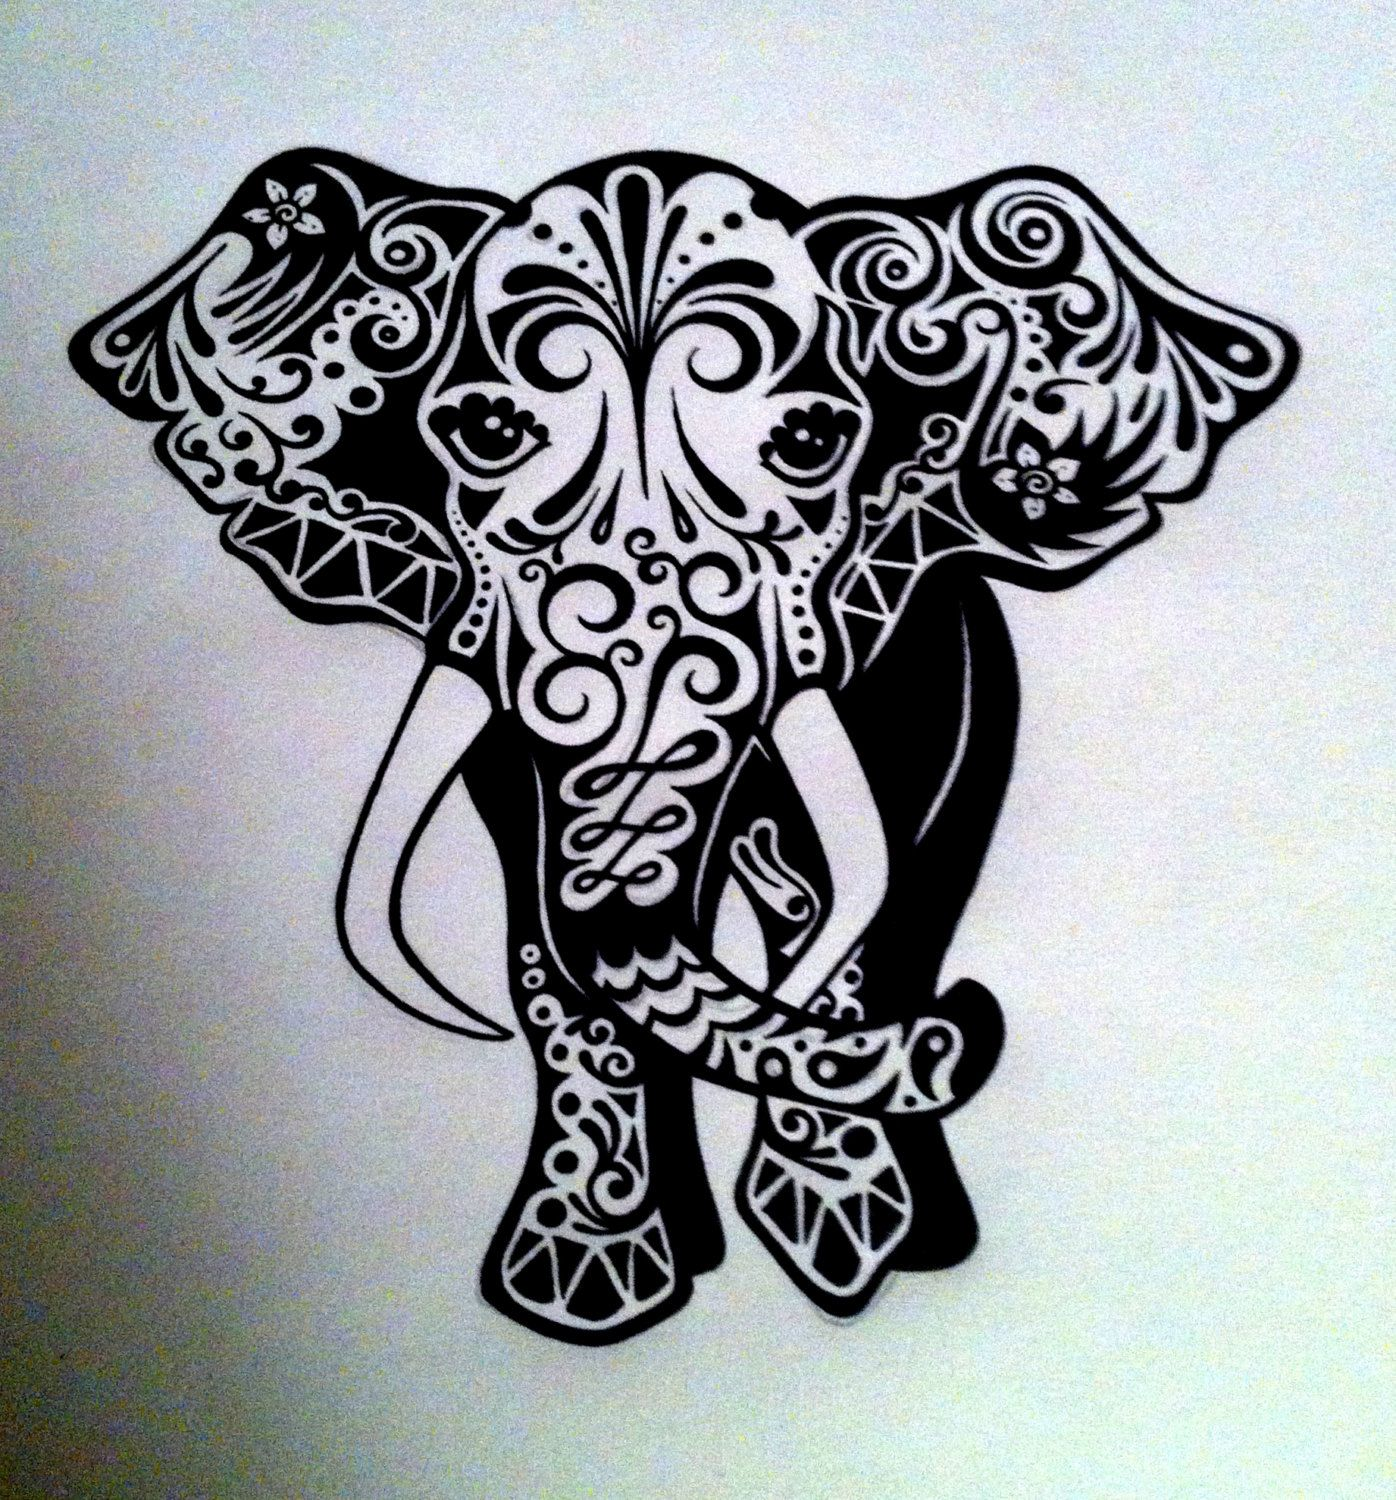 Henna Elephant Tattoo Designs: Custom Elephant Ink Drawing Black & White Commissioned By